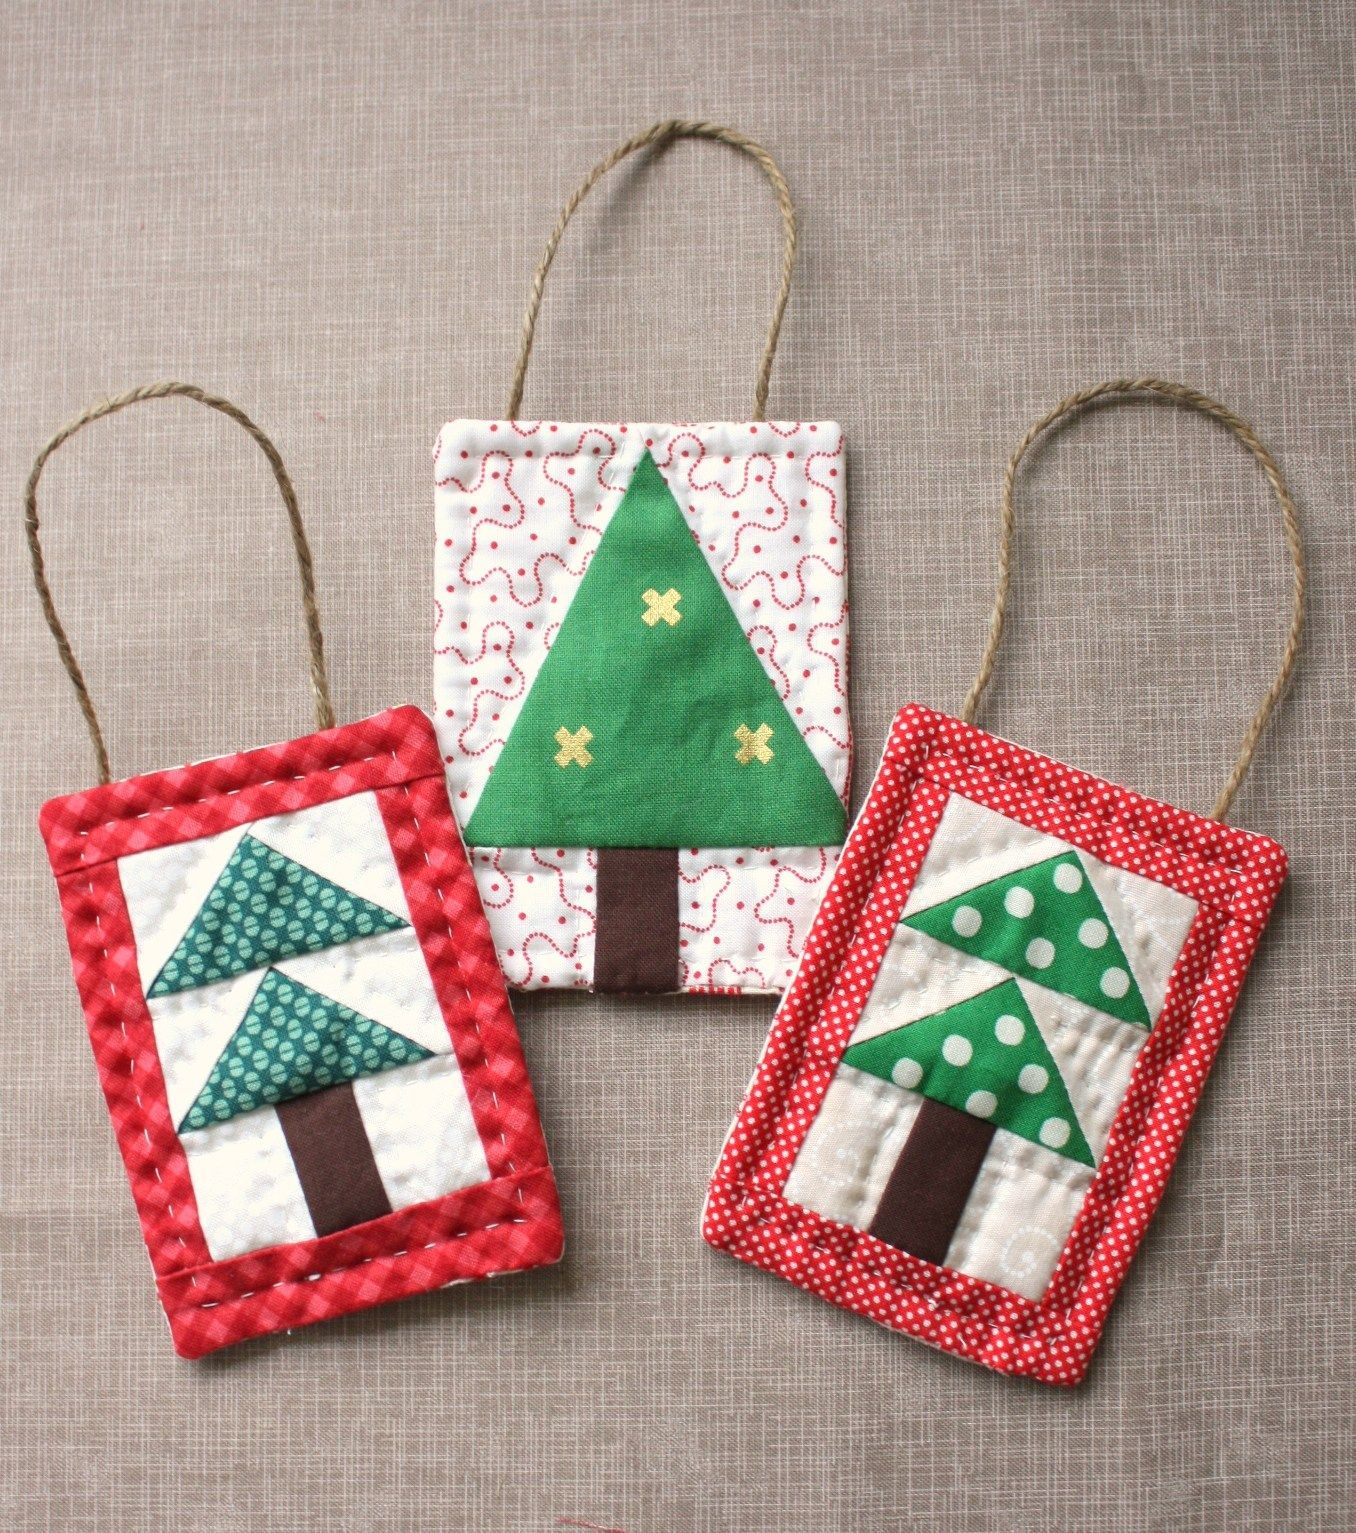 Christmas Sewing Craft Ideas Part - 21: A List Of Handmade Christmas Sewing Projects Including Stockings,  Ornaments, Pillows, Gifts,